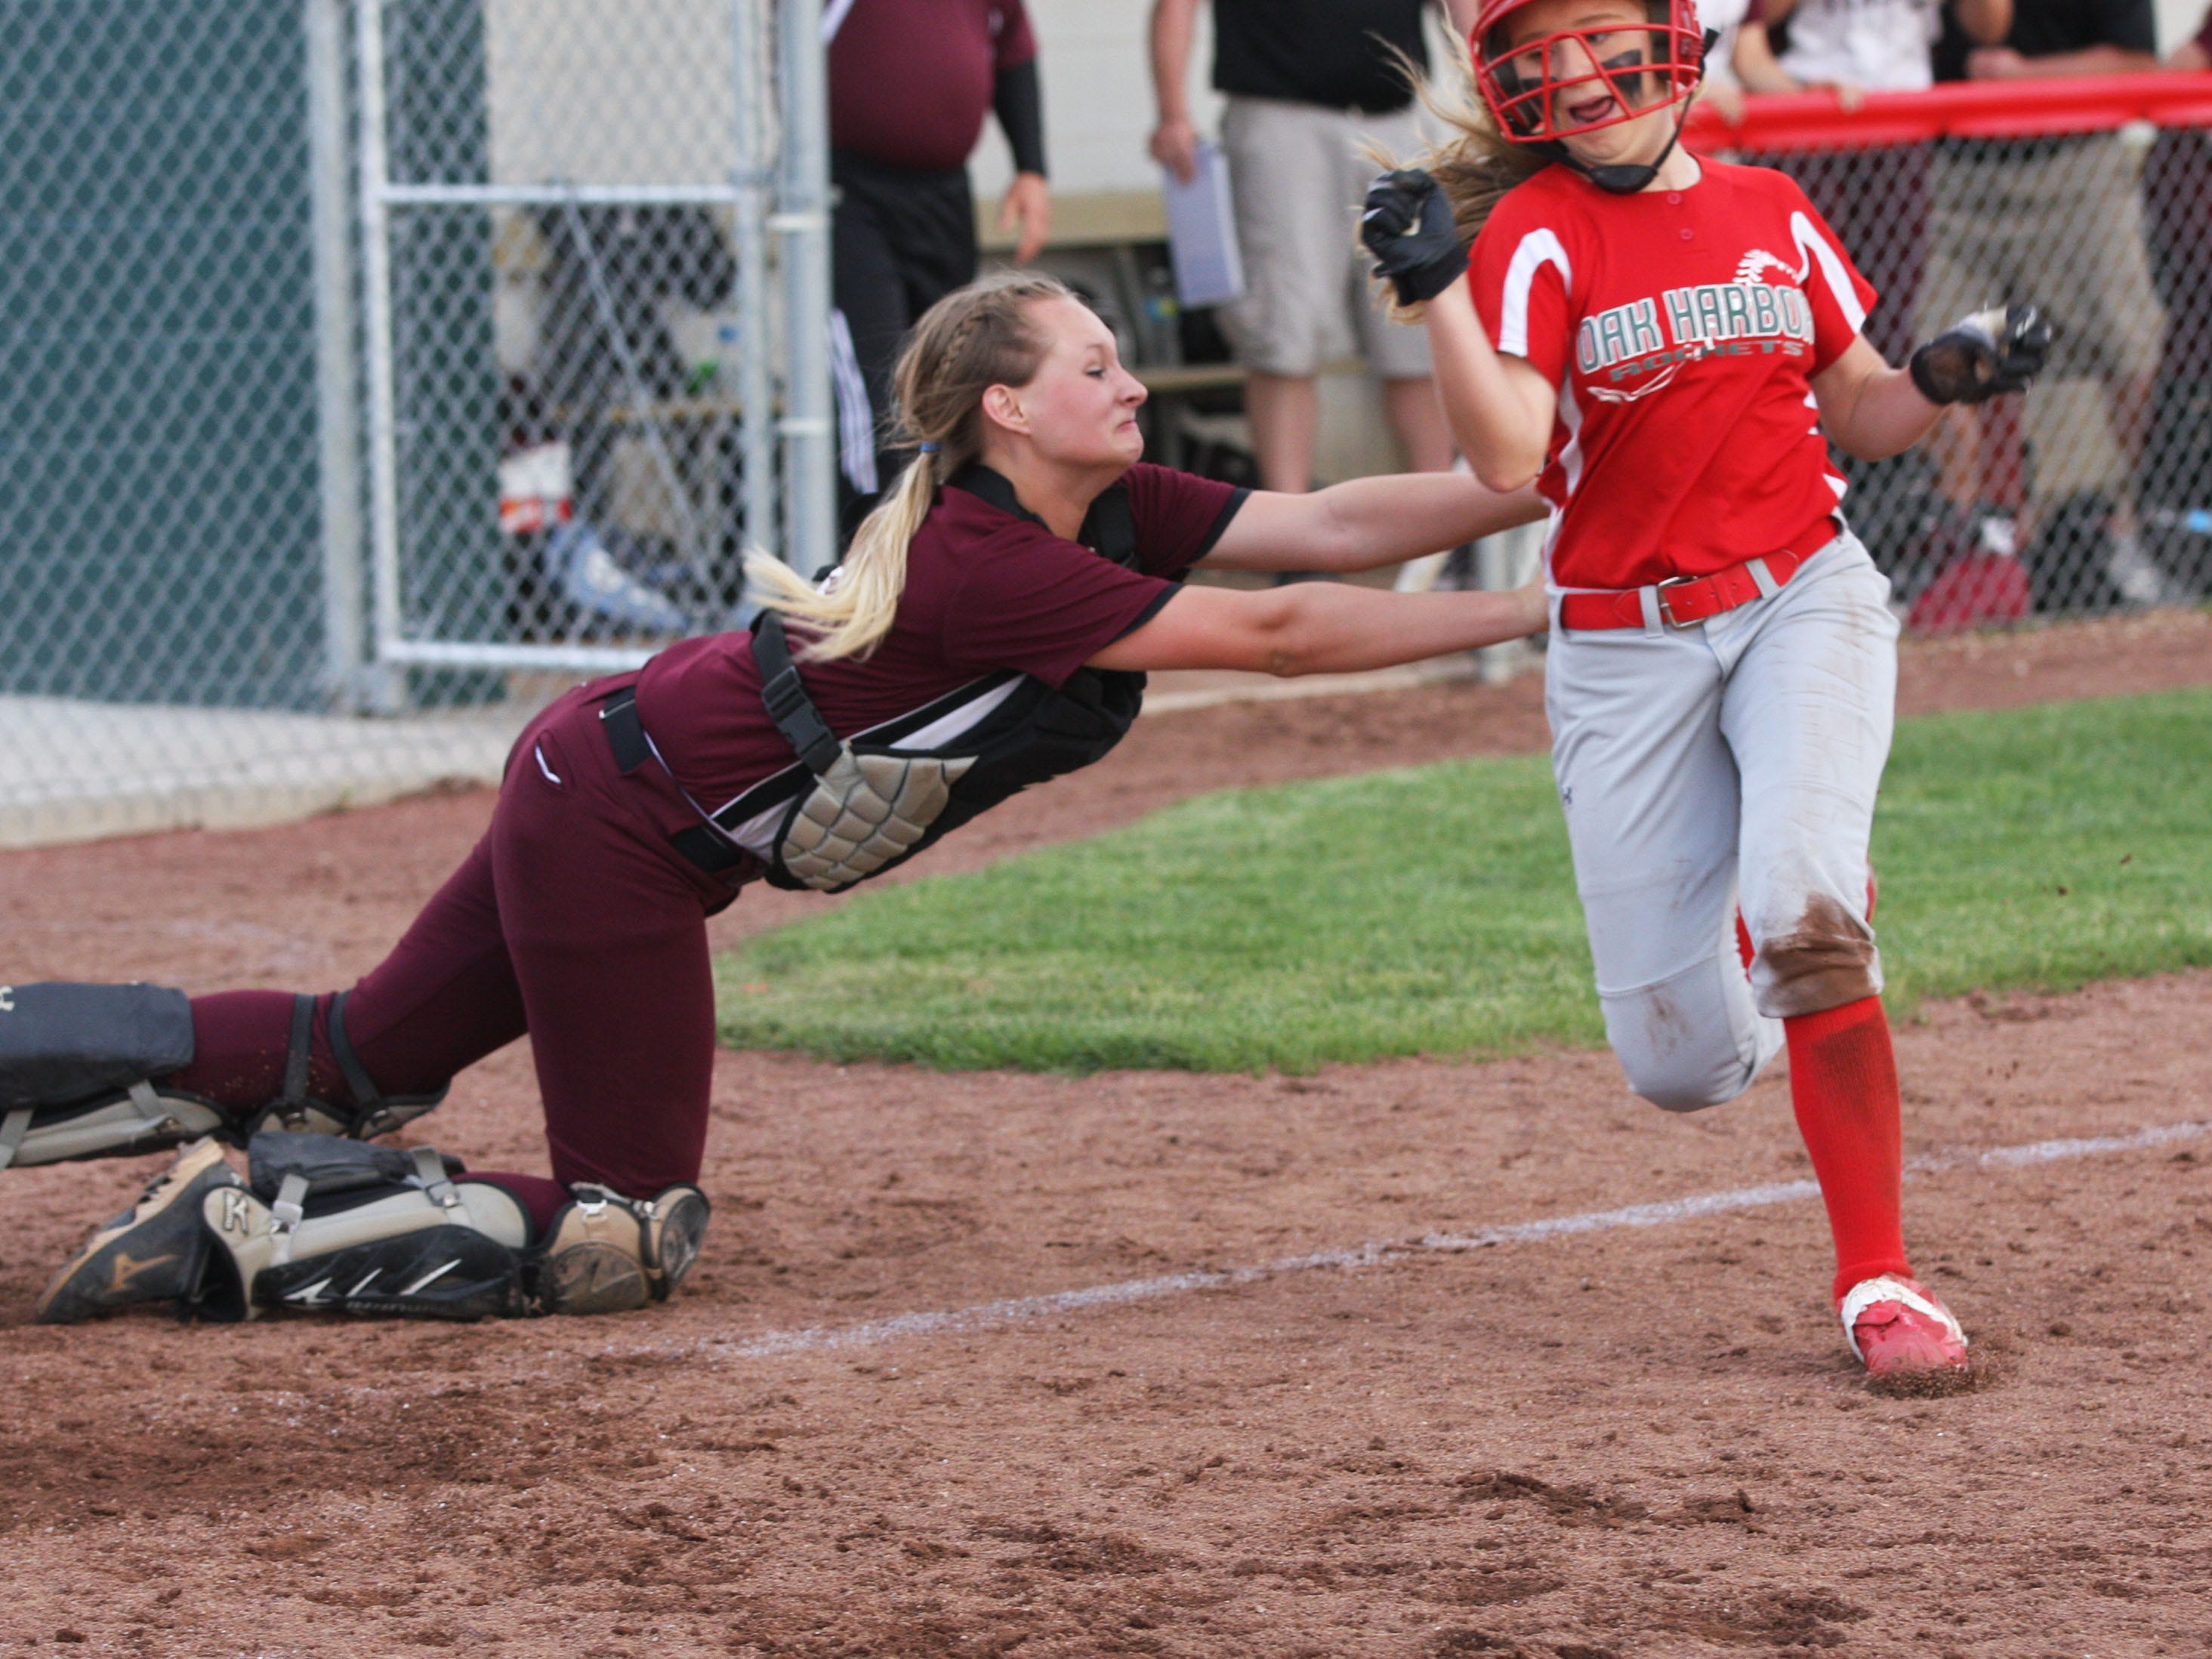 Oak Harbor's Seree Petersen avoids the tag of Willard's Callie Jones to score the game-tying run on a close play at the plate Friday. The Rockets defeated Willard 2-1 in 12 innings in the sectional tournament at Oak Harbor.